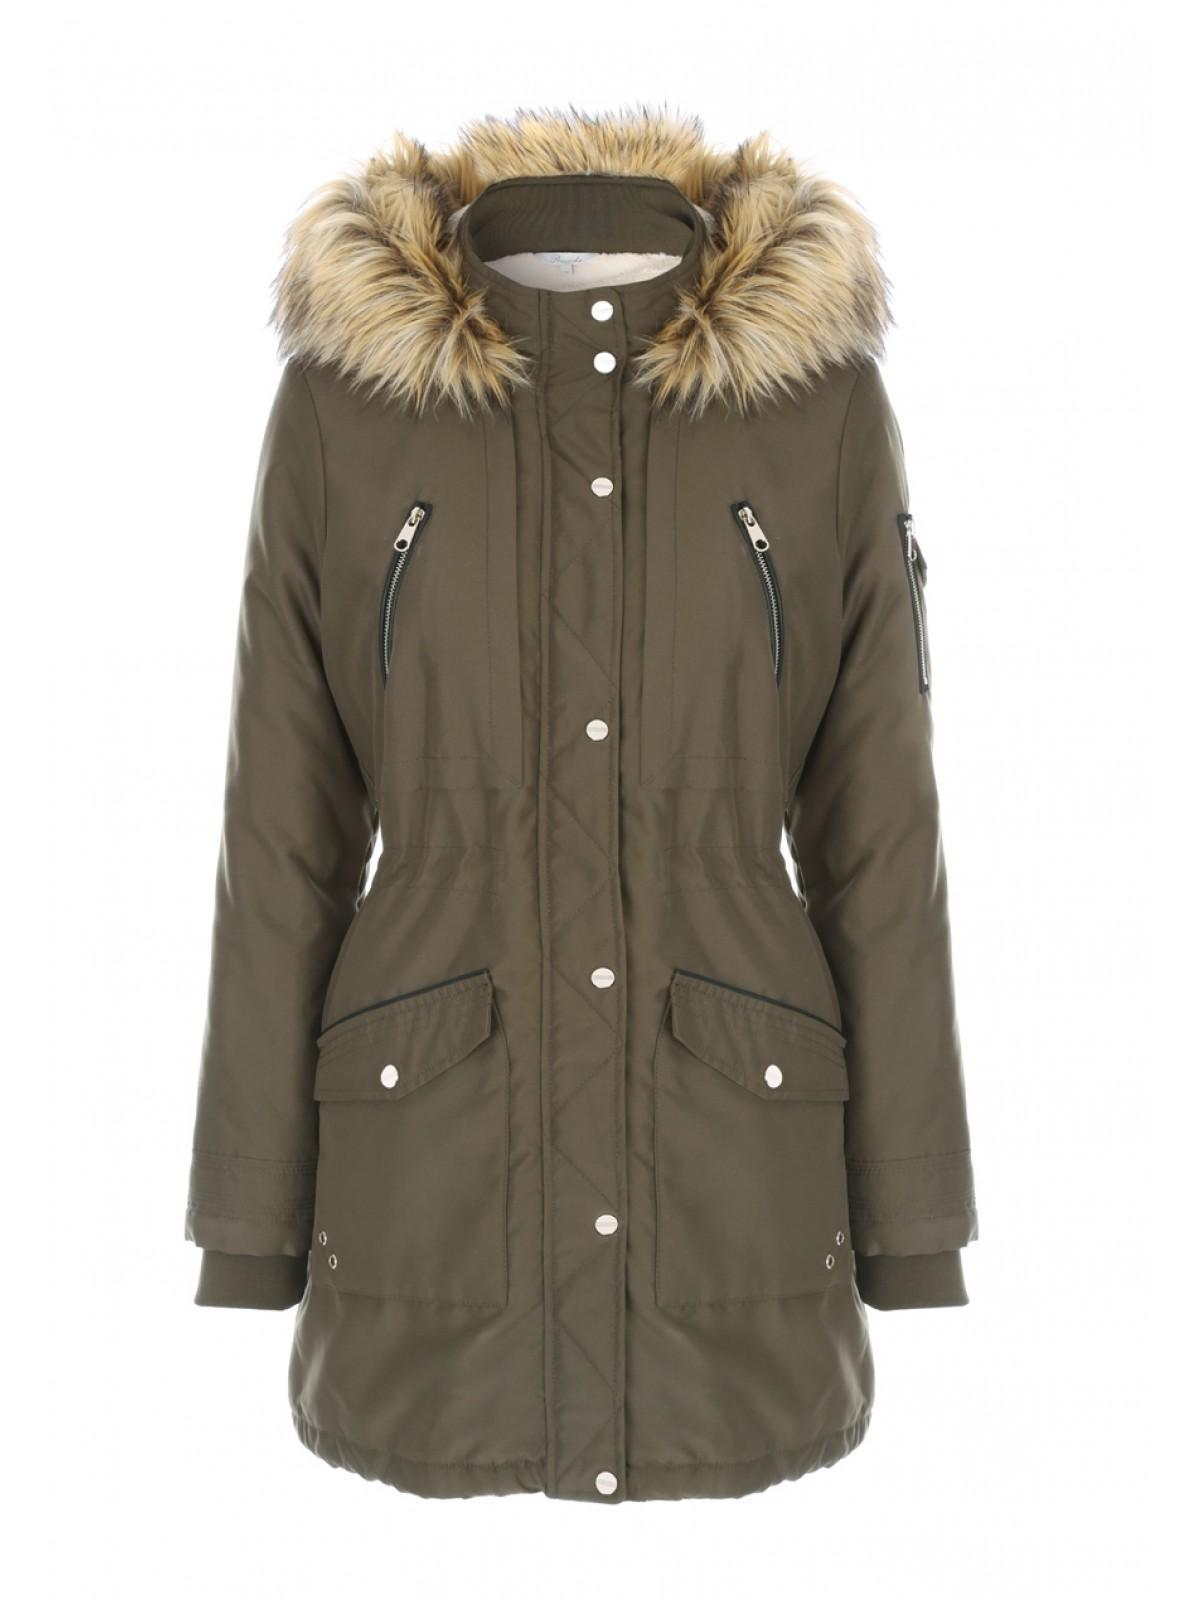 Black Friday Womens Winter Coats - Tradingbasis